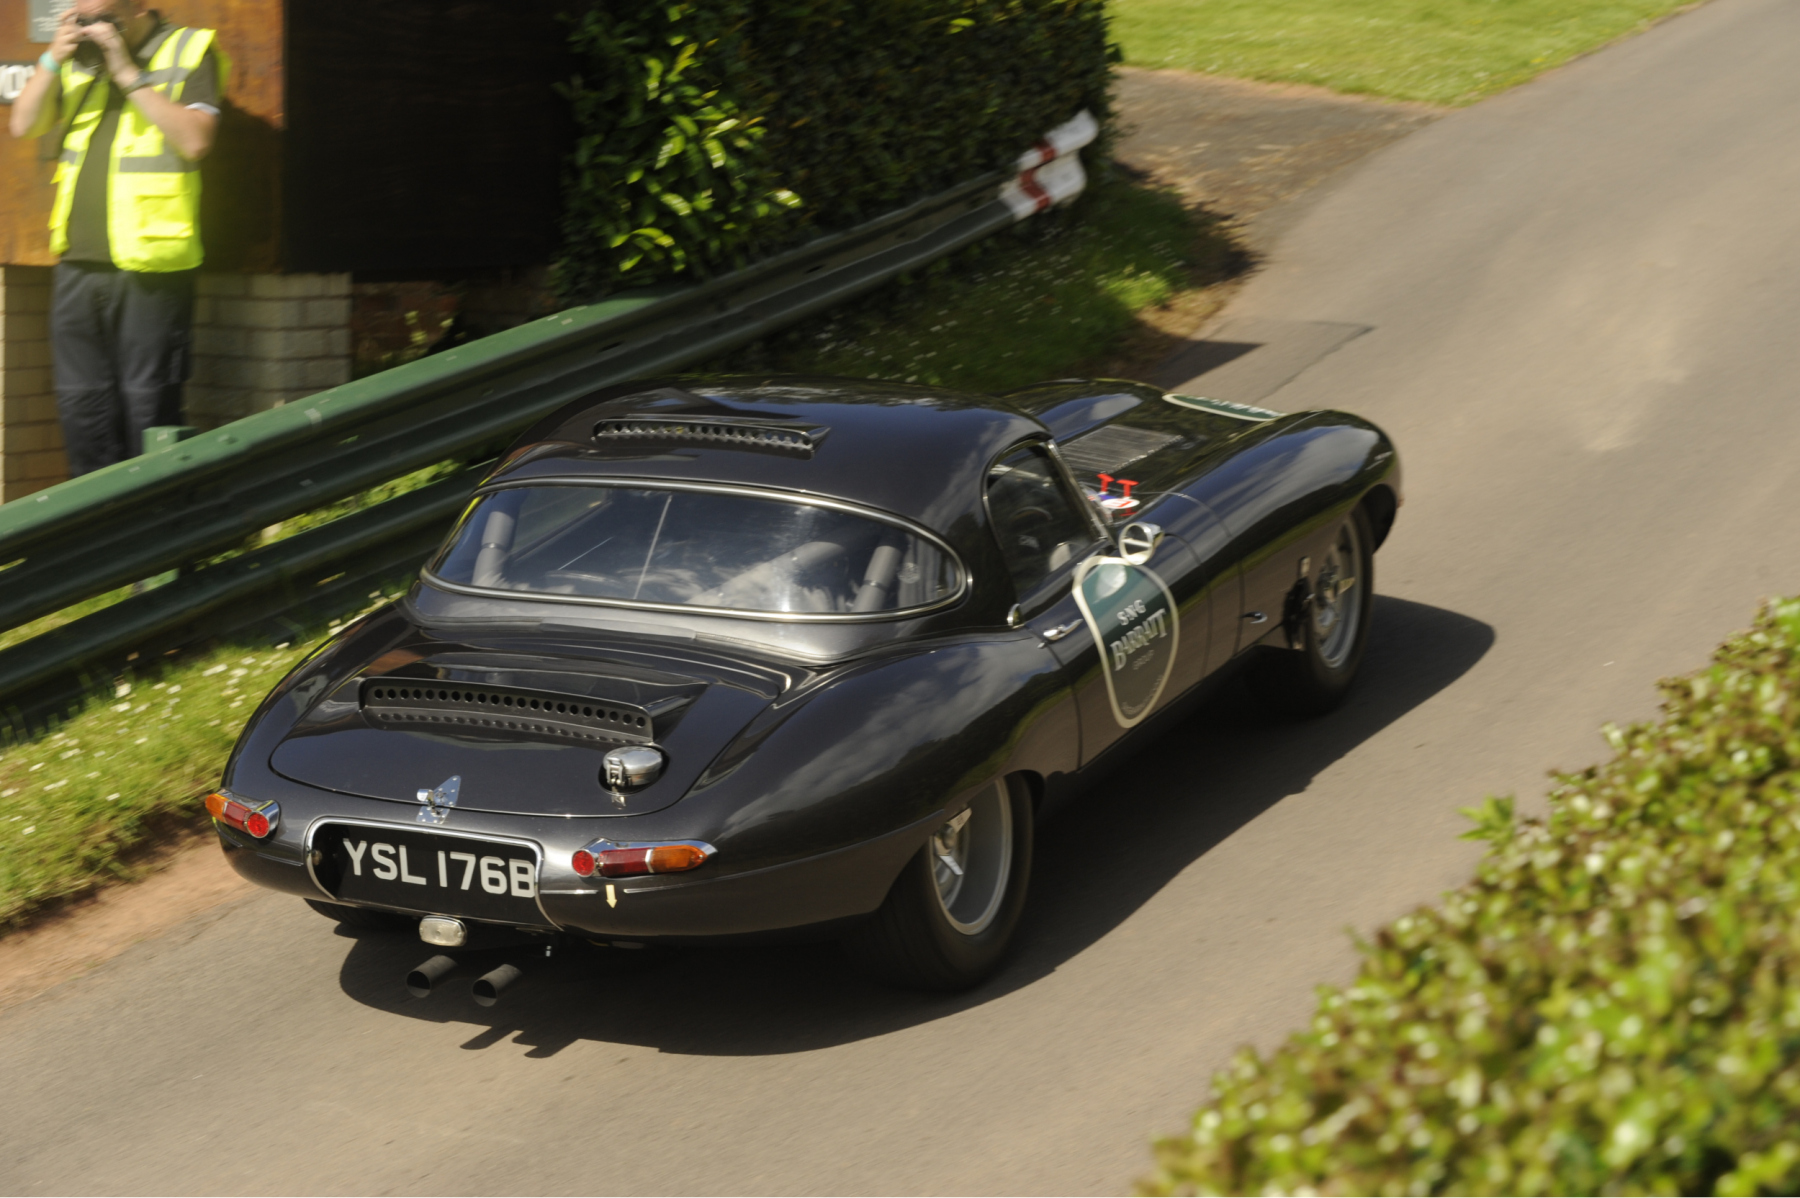 E-type-60-Saturday-photo-by-Abigail-Humphries-136